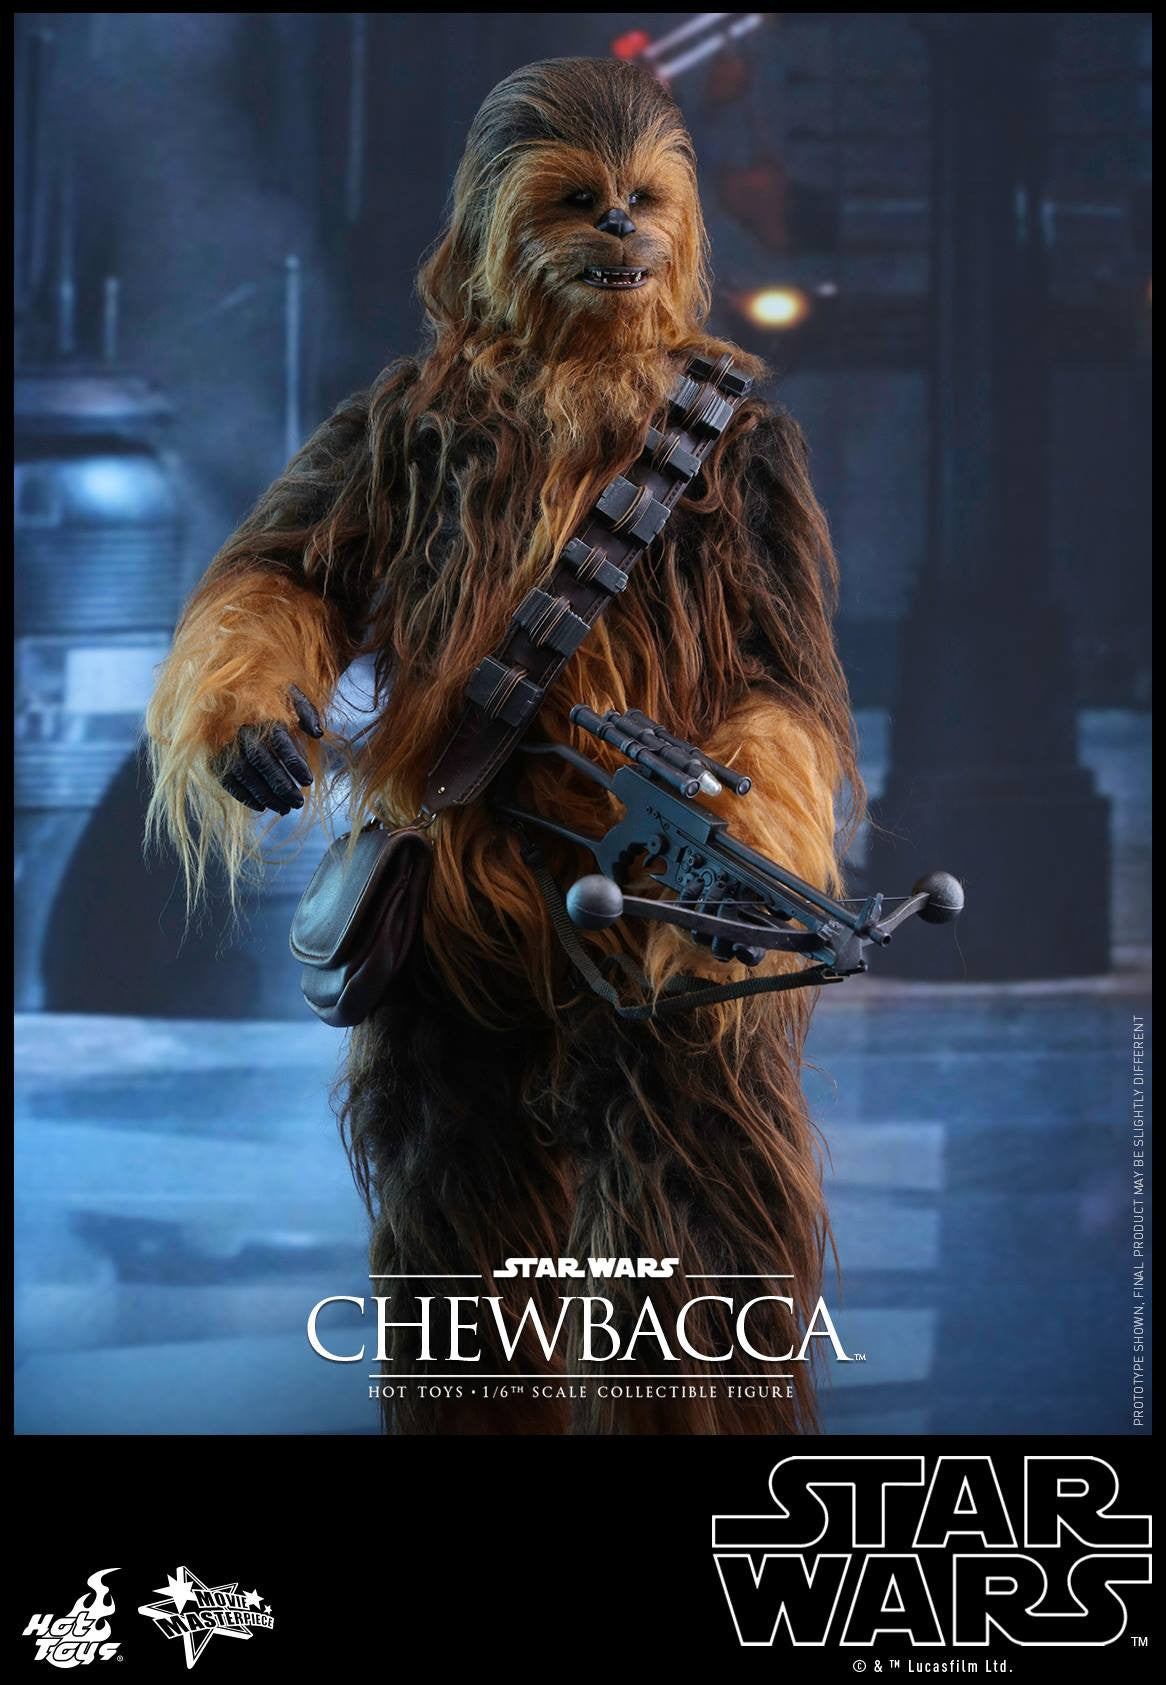 Hot Toys - MMS375 - Star Wars: The Force Awakens - Chewbacca - Marvelous Toys - 7